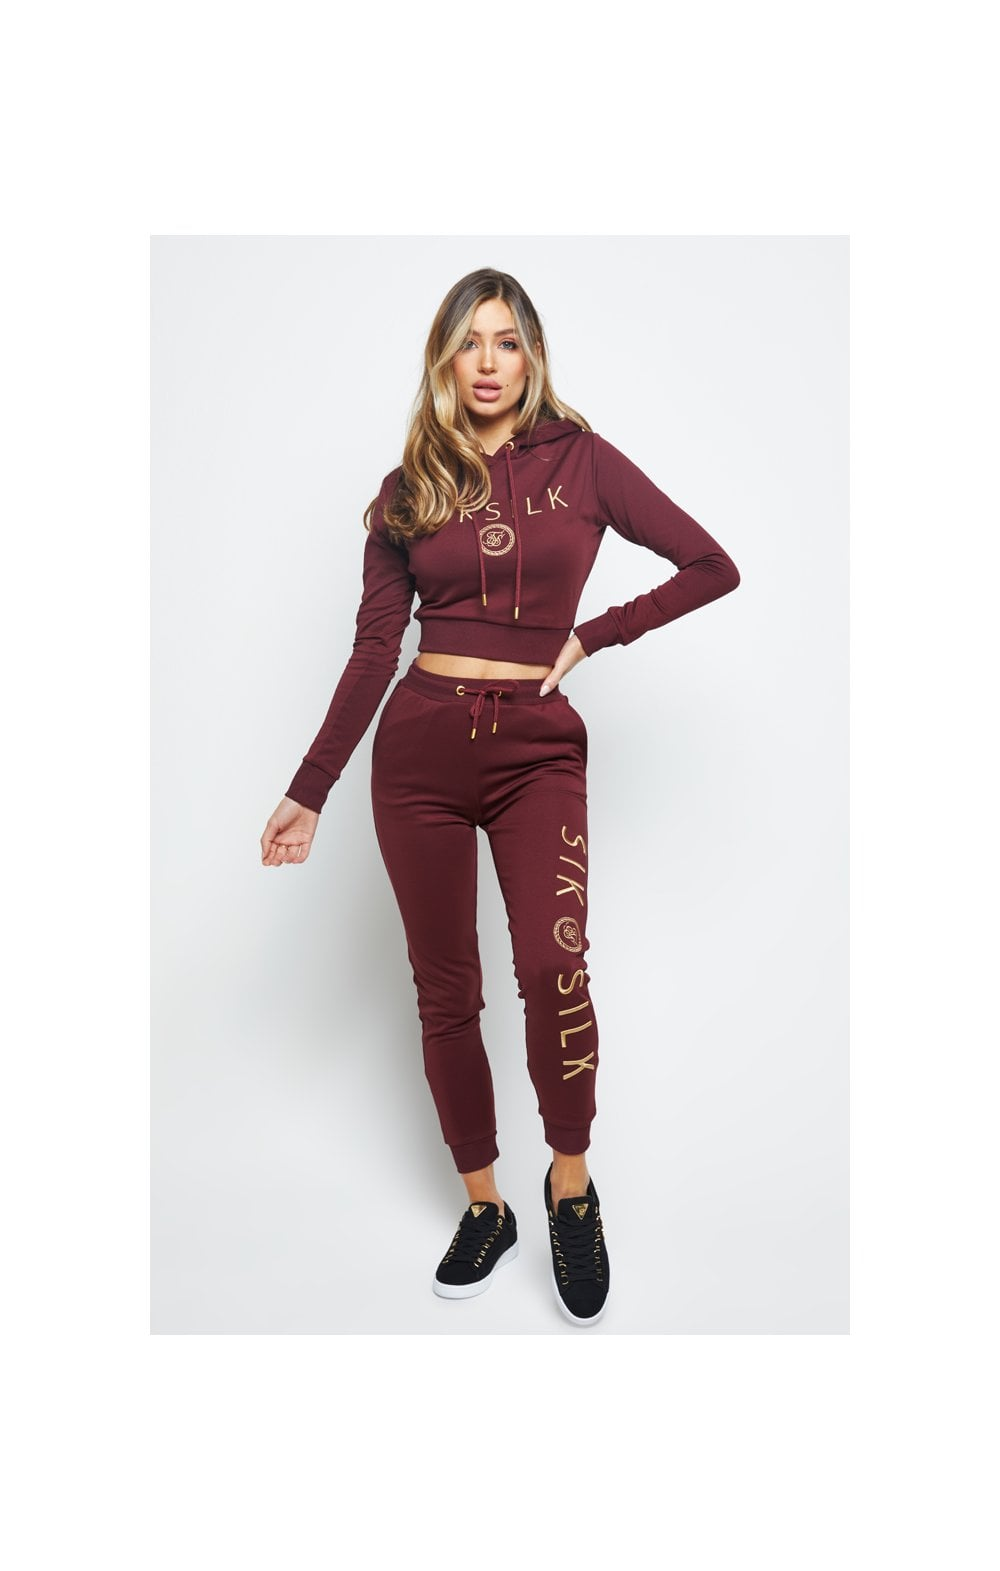 SikSilk Eyelet Mesh Track Top - Burgundy (2)